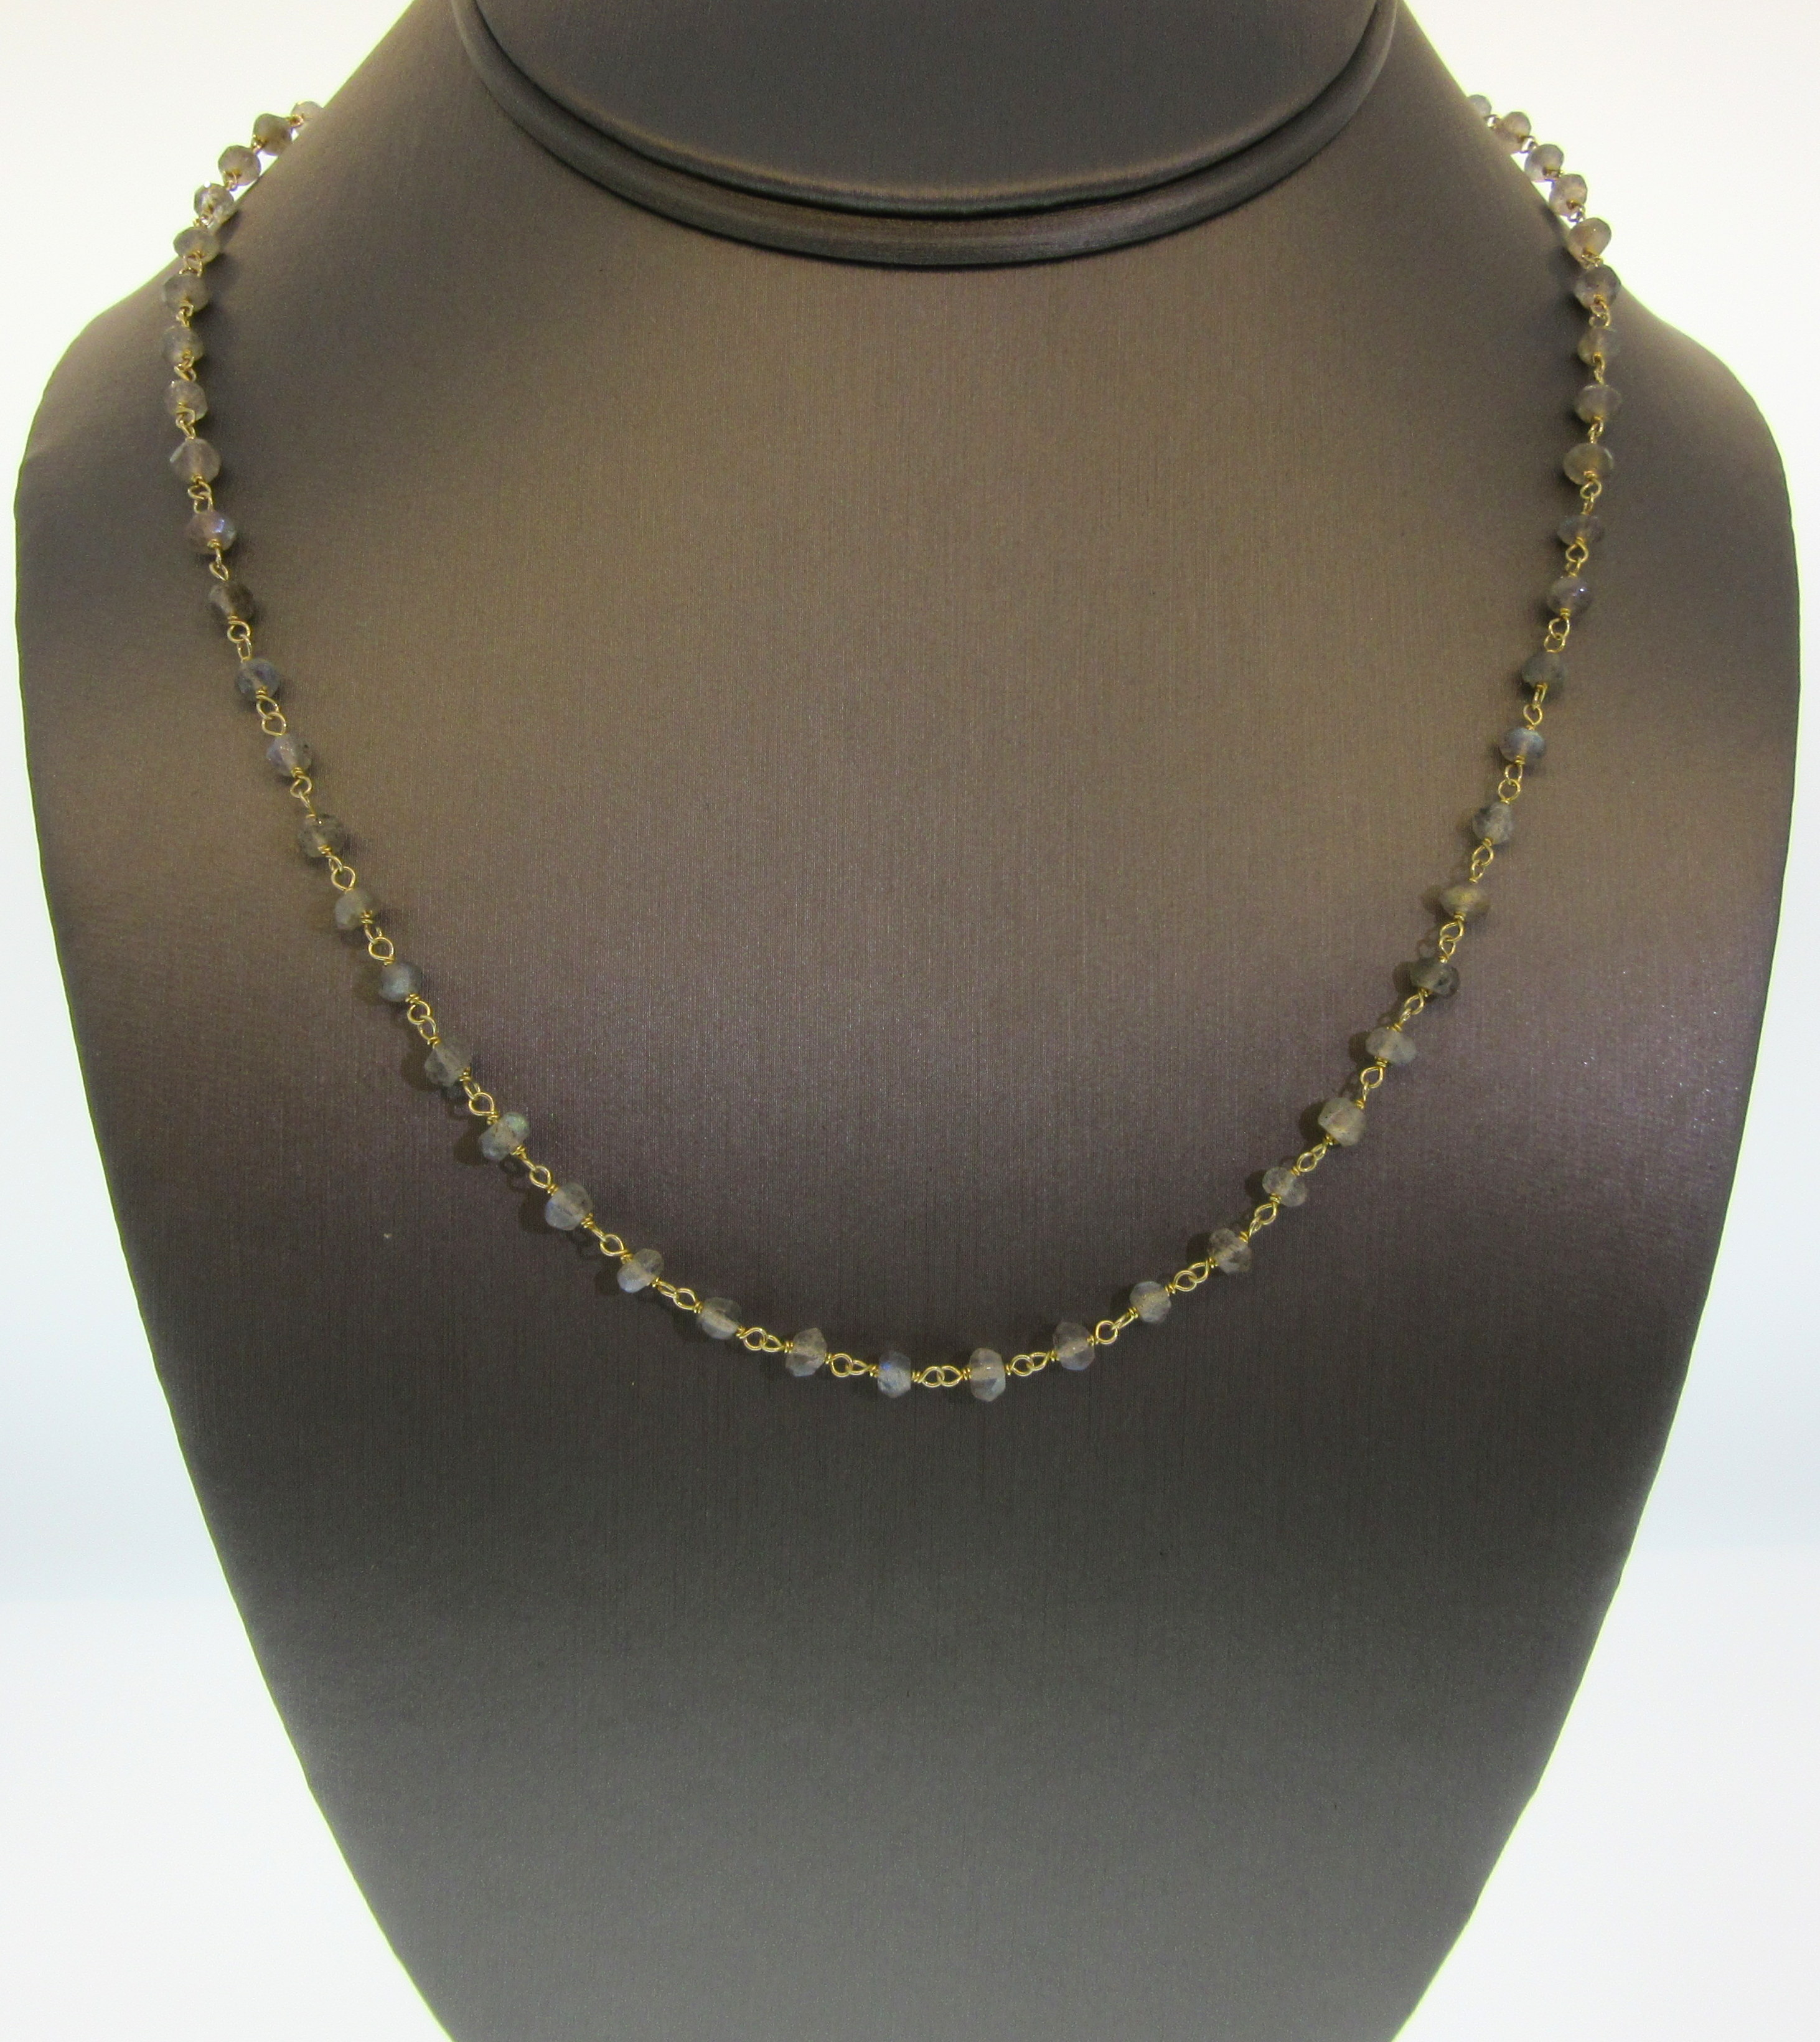 Rough Cut Labradorite by the Yard Necklace